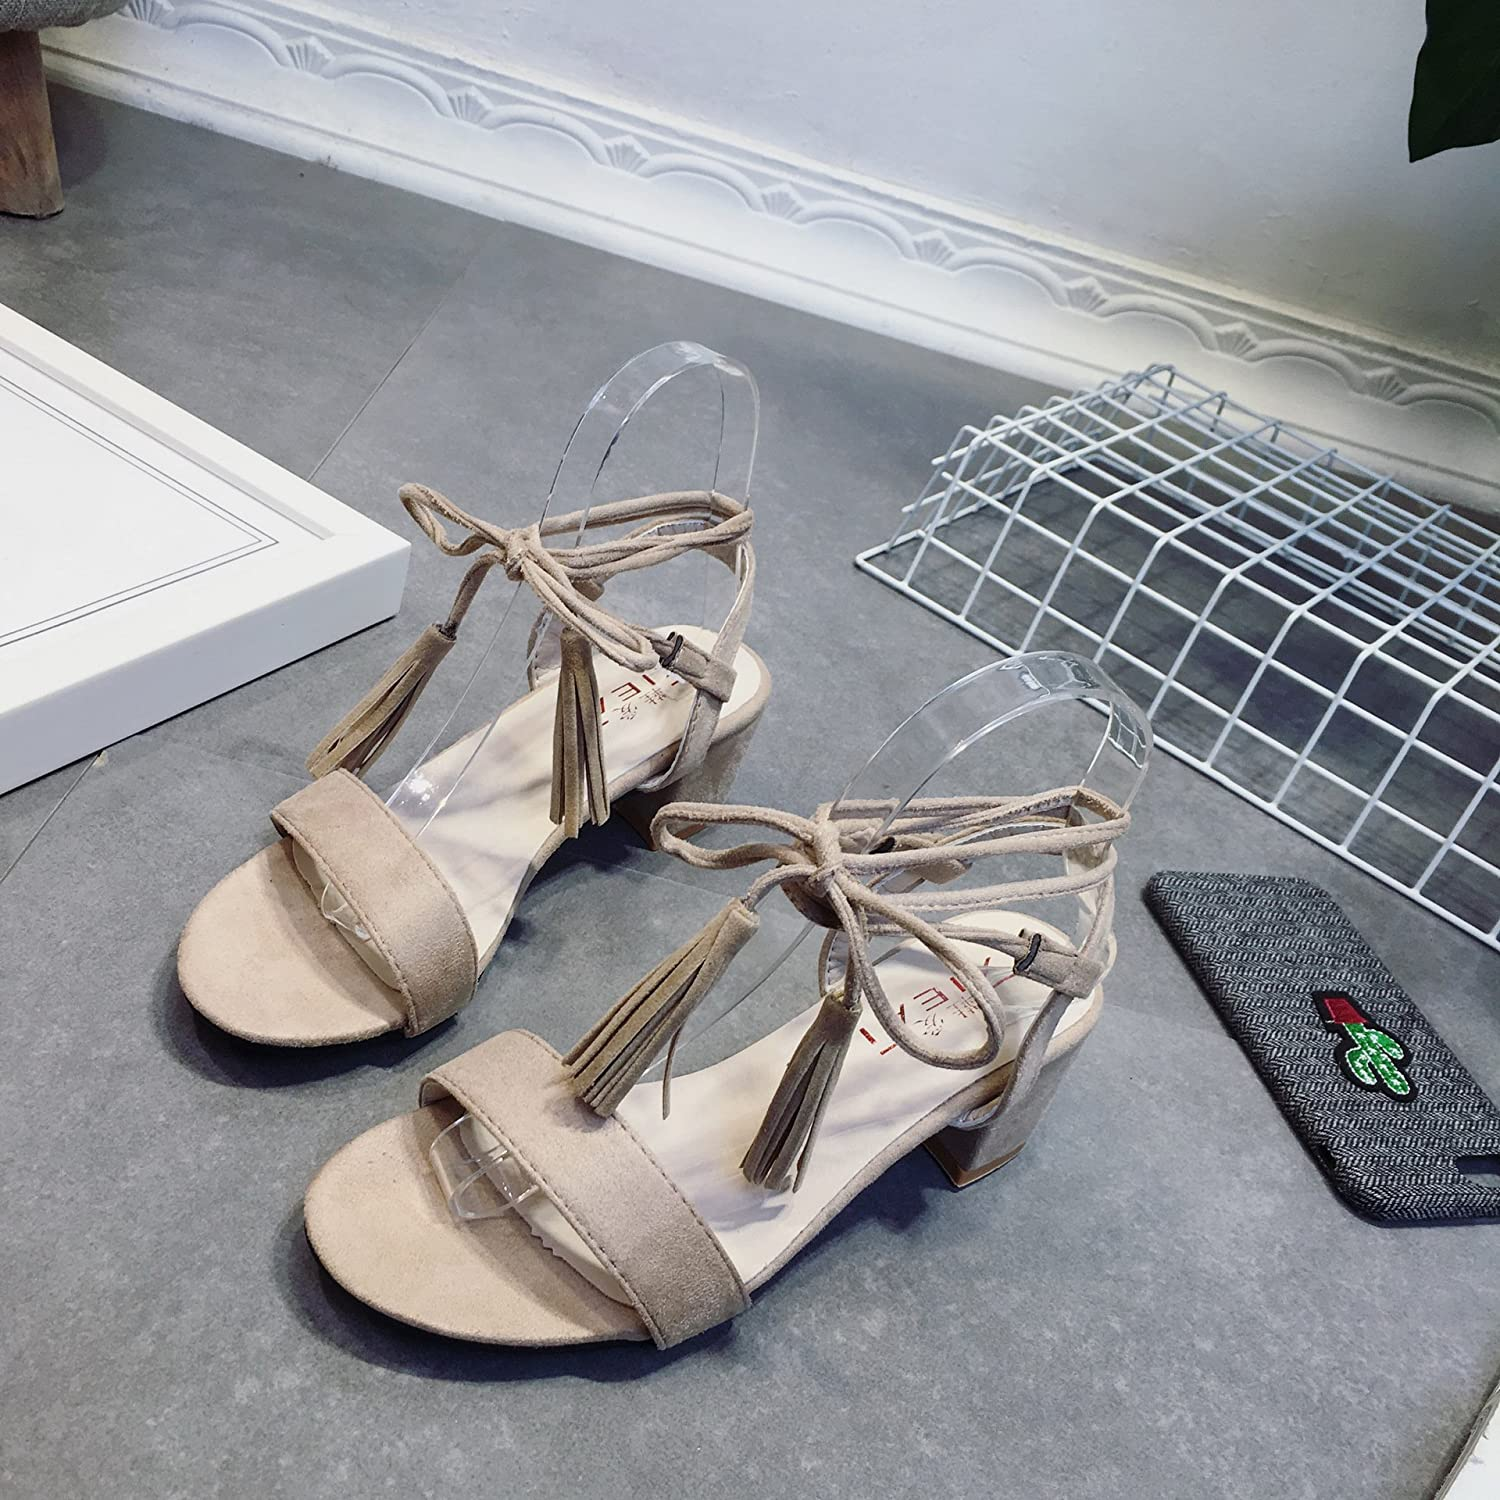 KAI-Heel heel heel heel heel heel heel heel heel heel Rome,Nude color,Thirty-eight